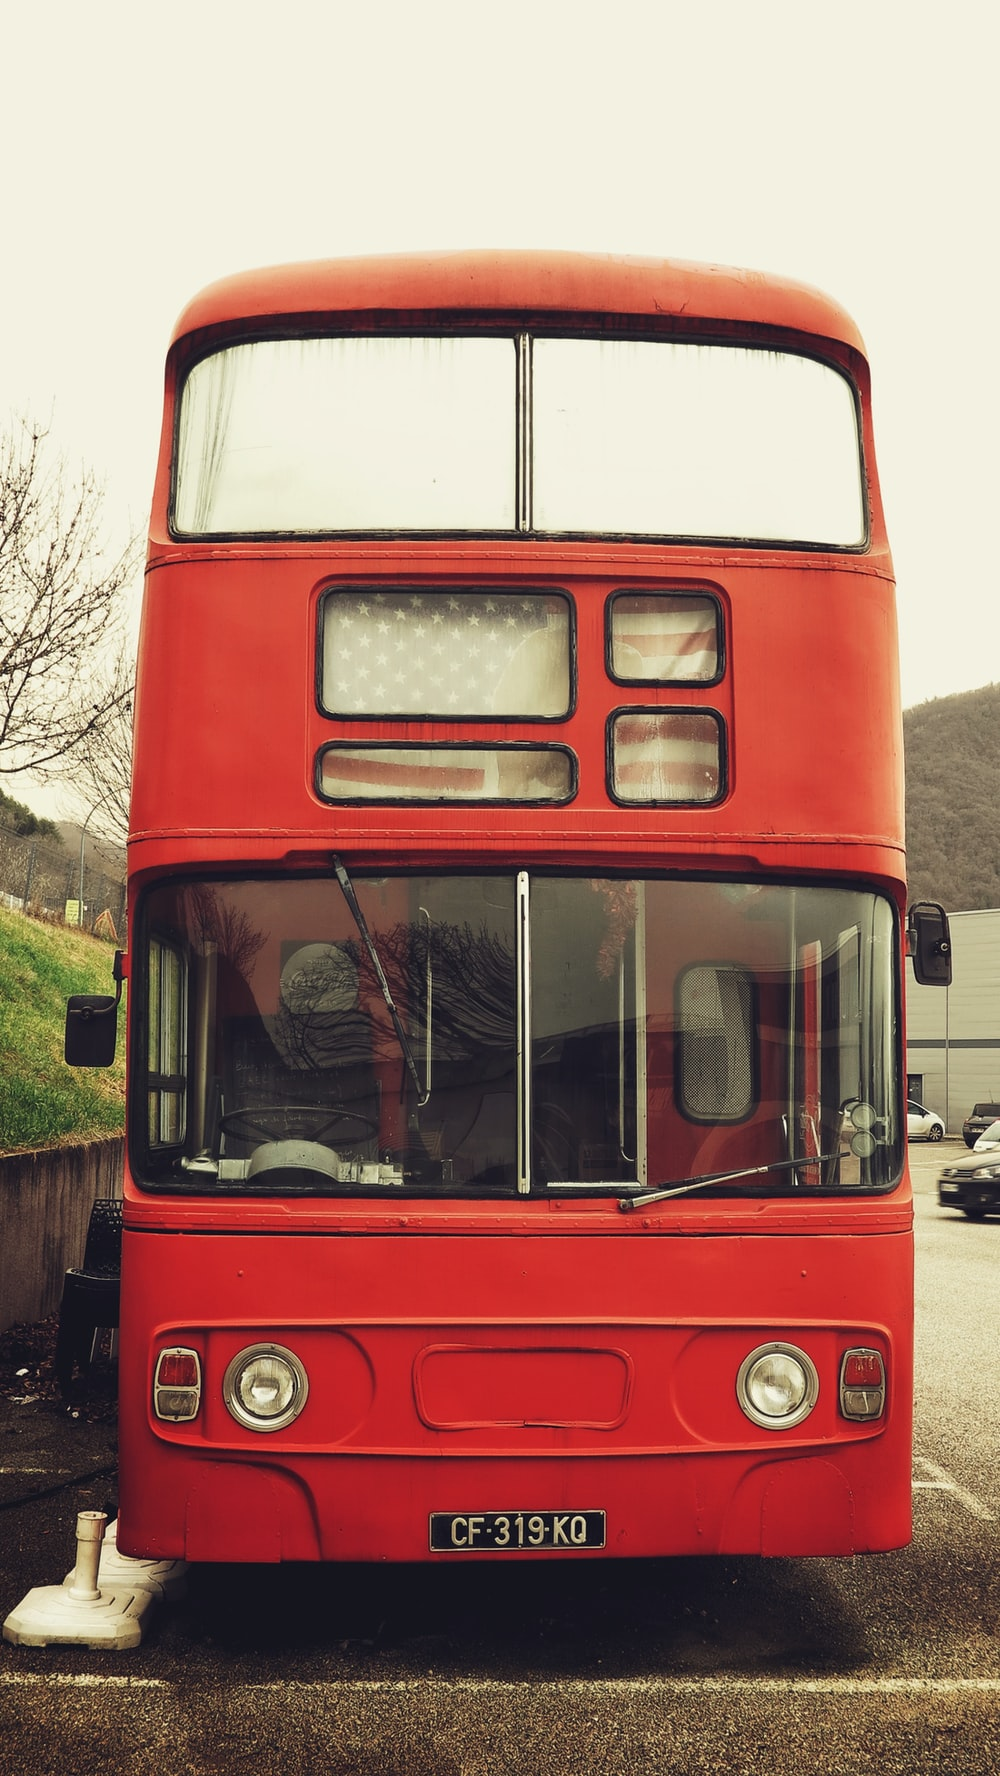 red and white bus near green trees during daytime